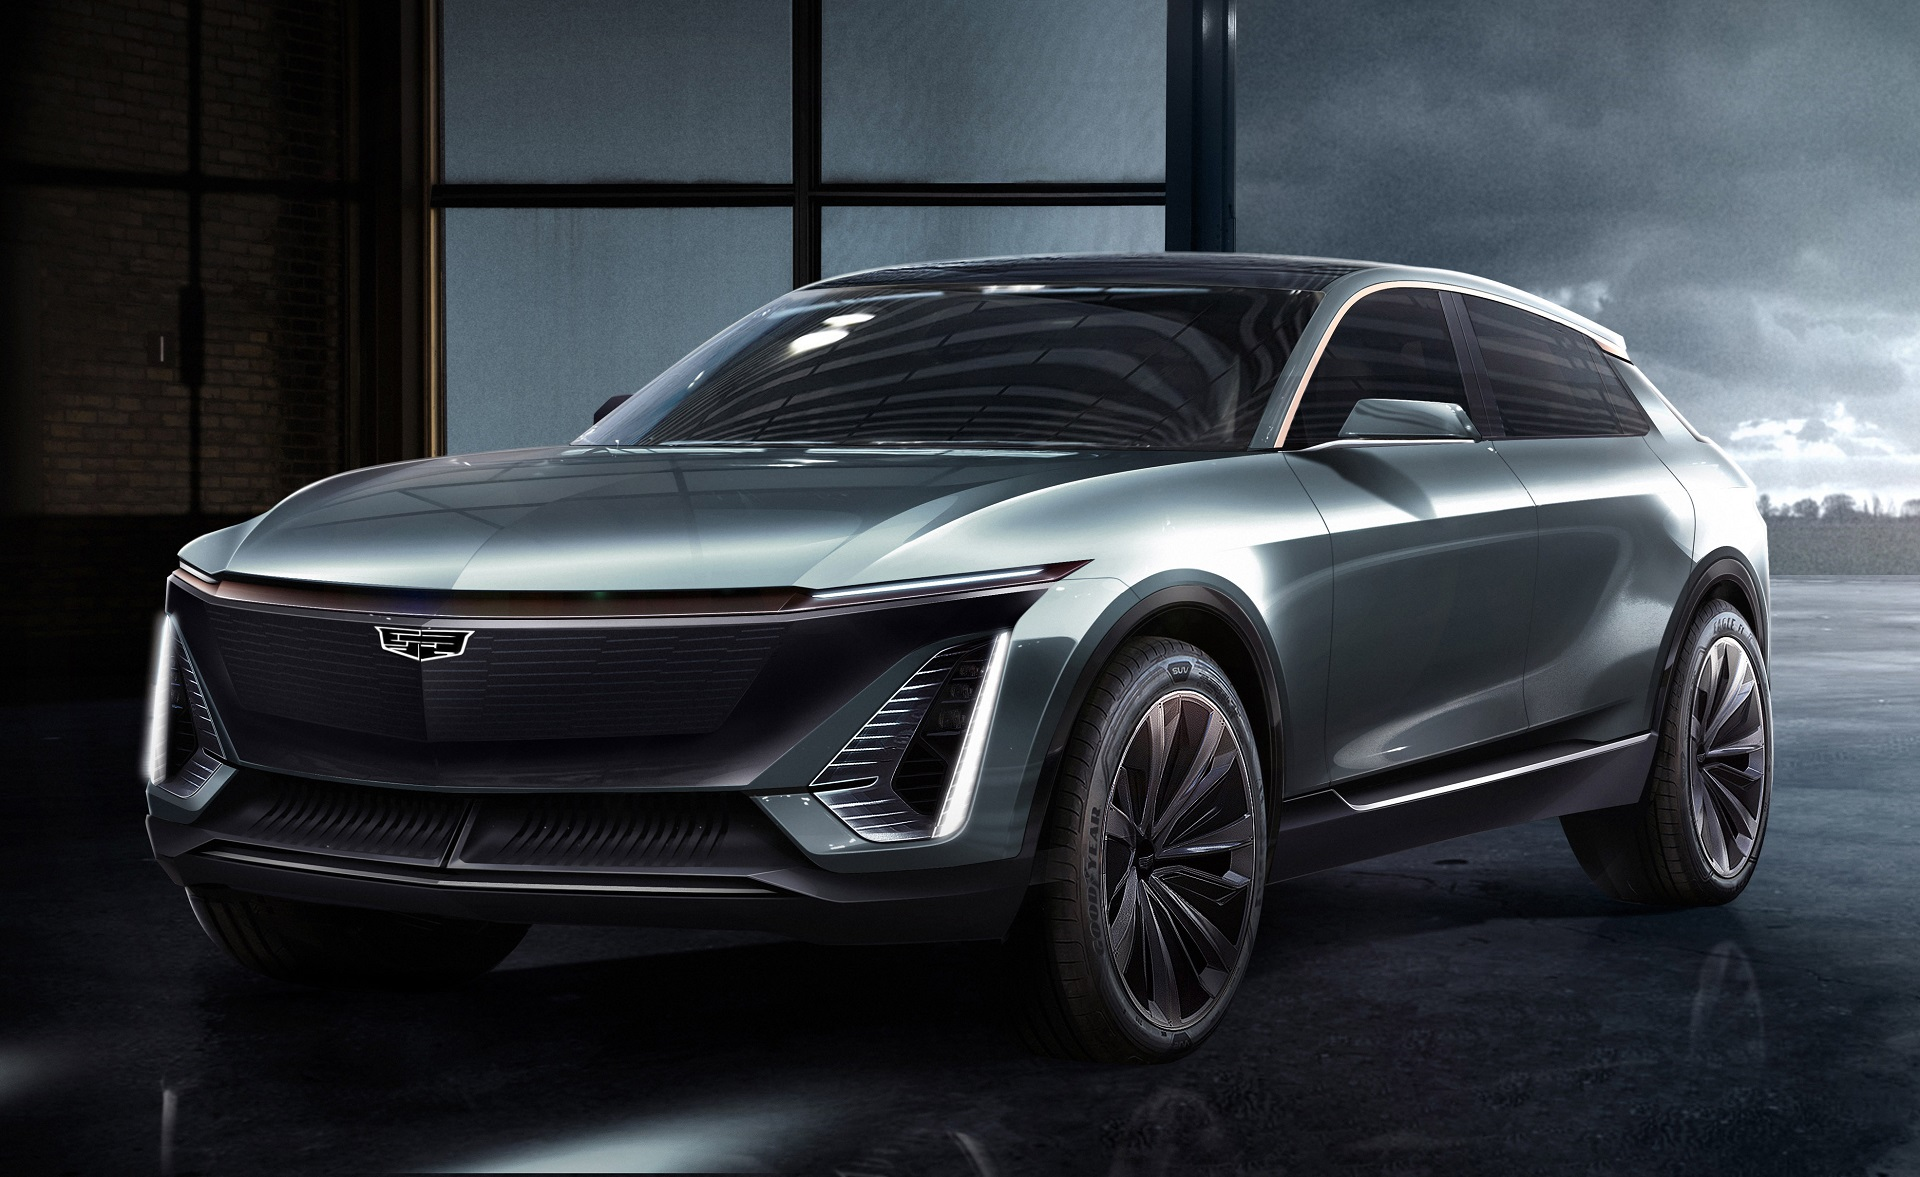 Long Range Cadillac Suv To Lead Gm S Next Electric Car Push In 3 Years